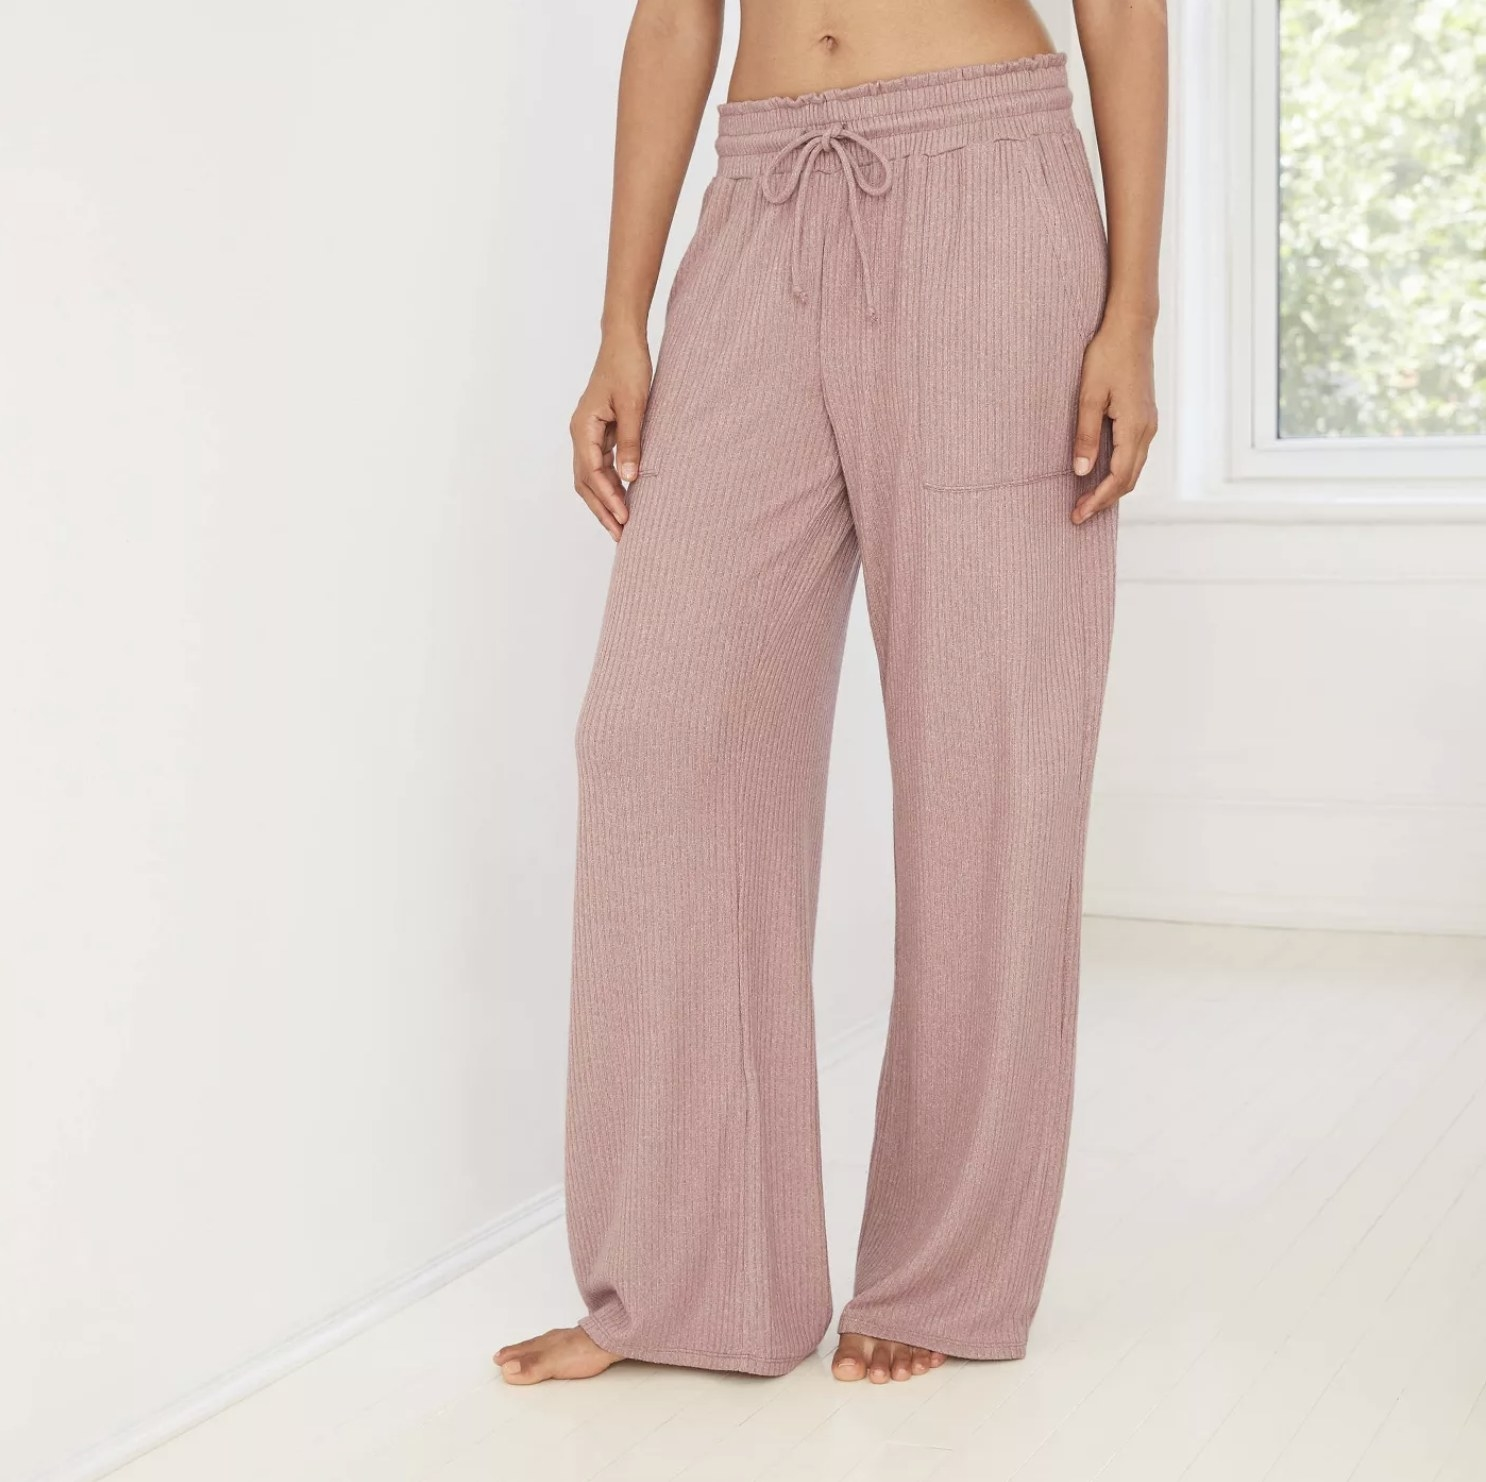 Model is wearing a light mauve wide leg pant with drawstring and pockets